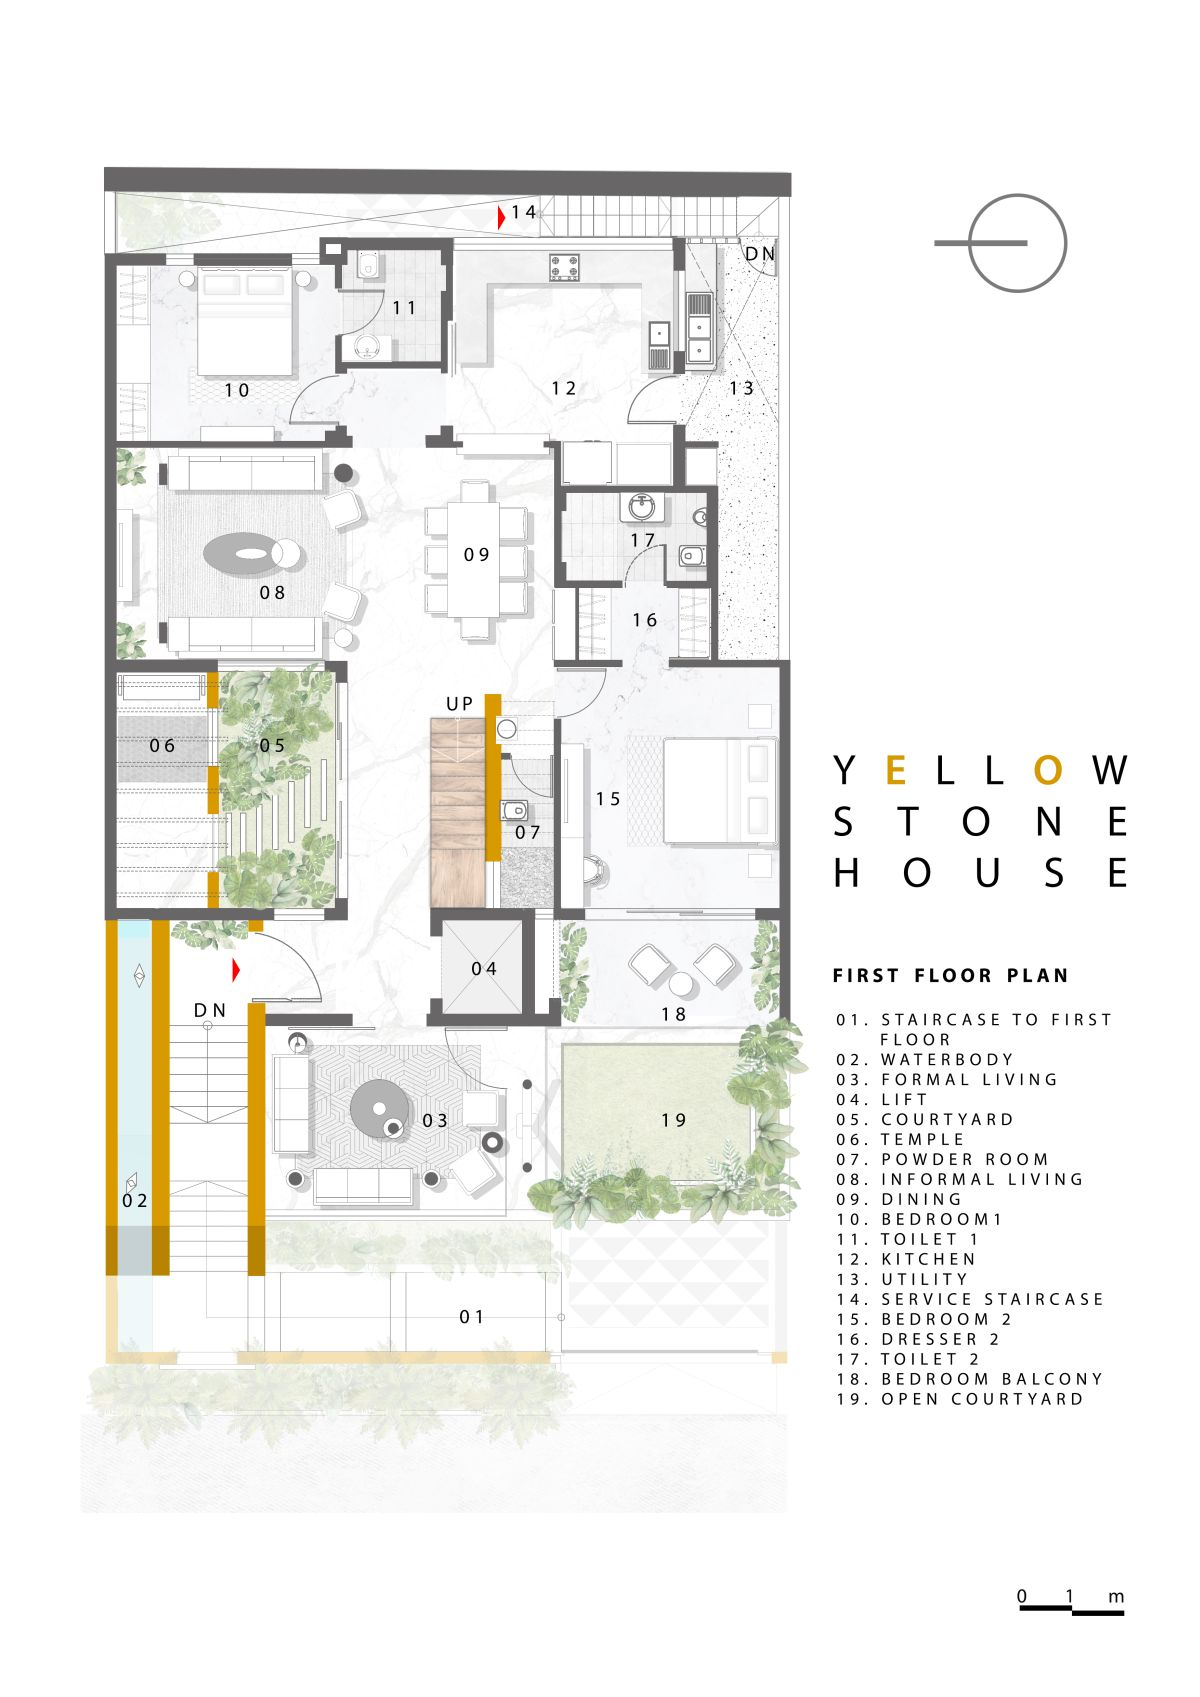 Yellow Stone House, at Indore, by Span Architects 67